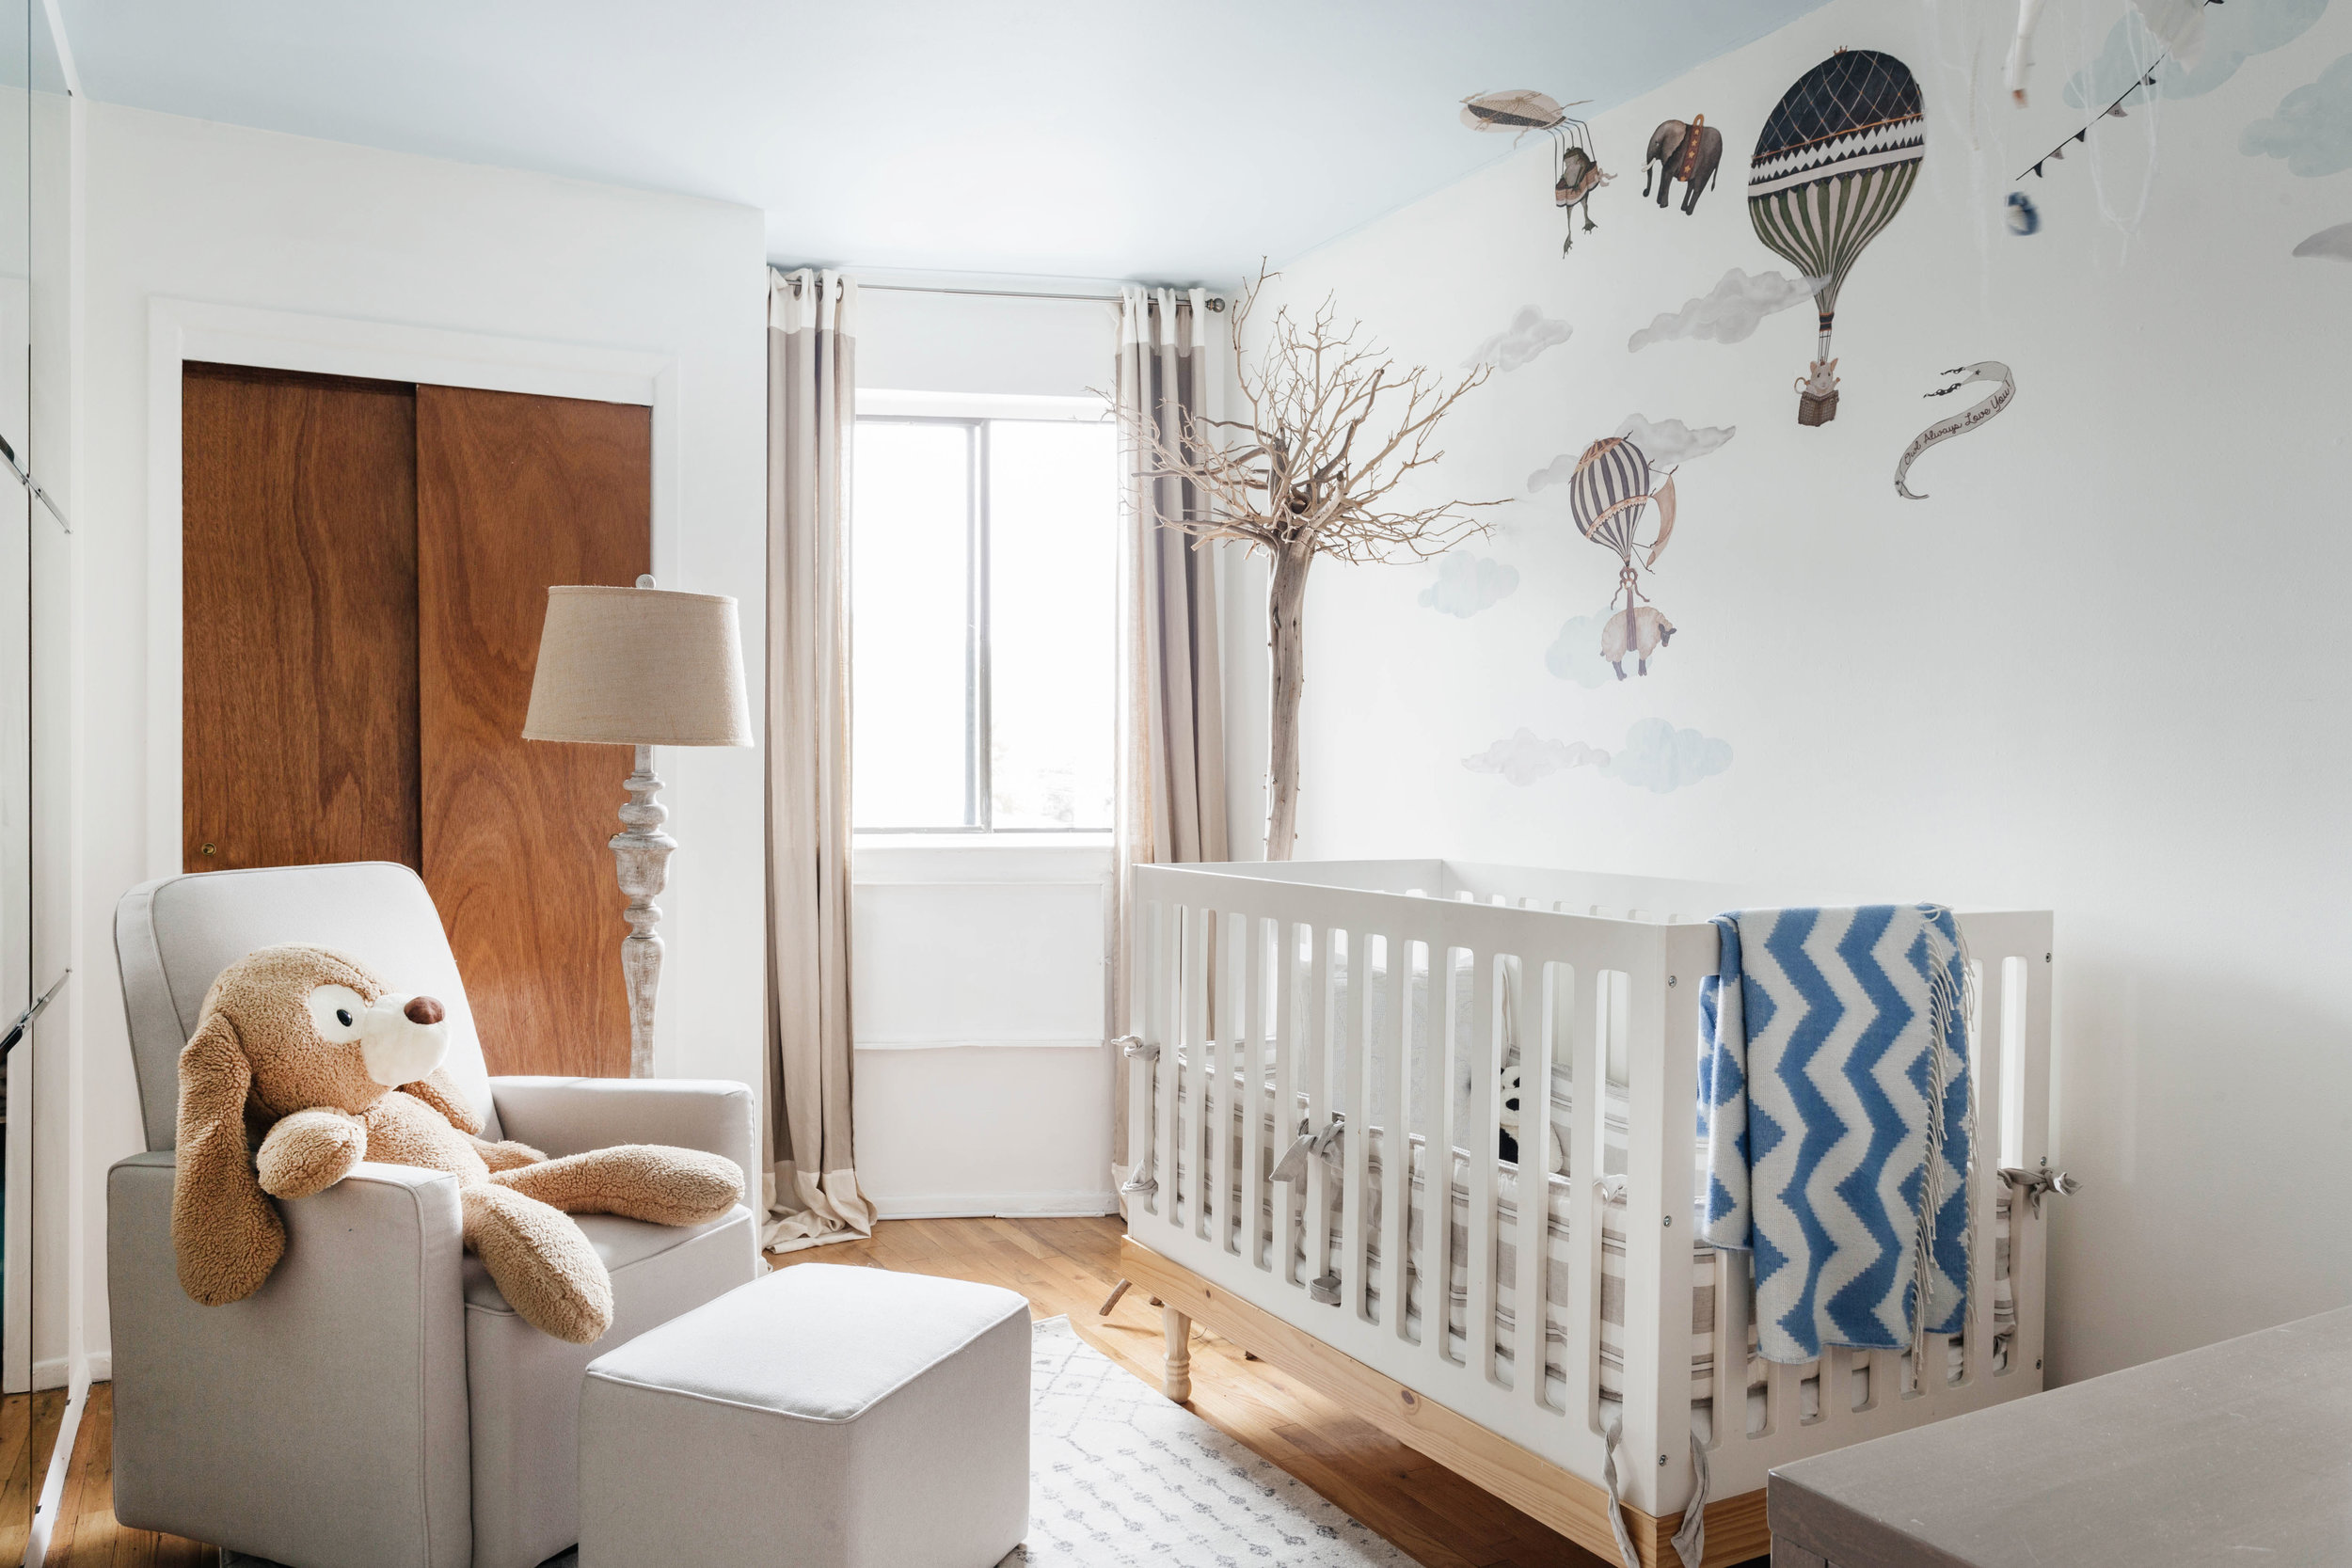 Baby's room with custom basket shelves mounted on wall